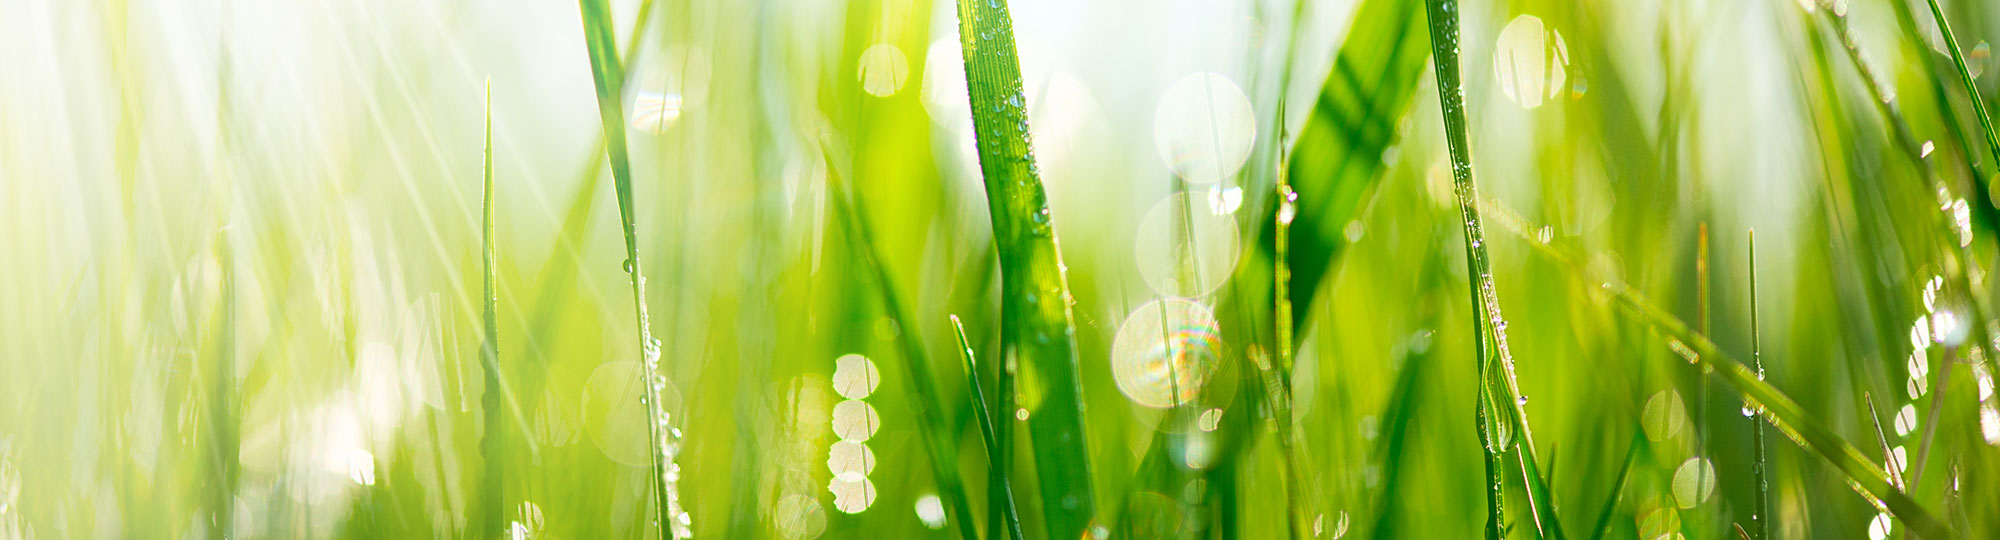 Blades of Grass with drops of water